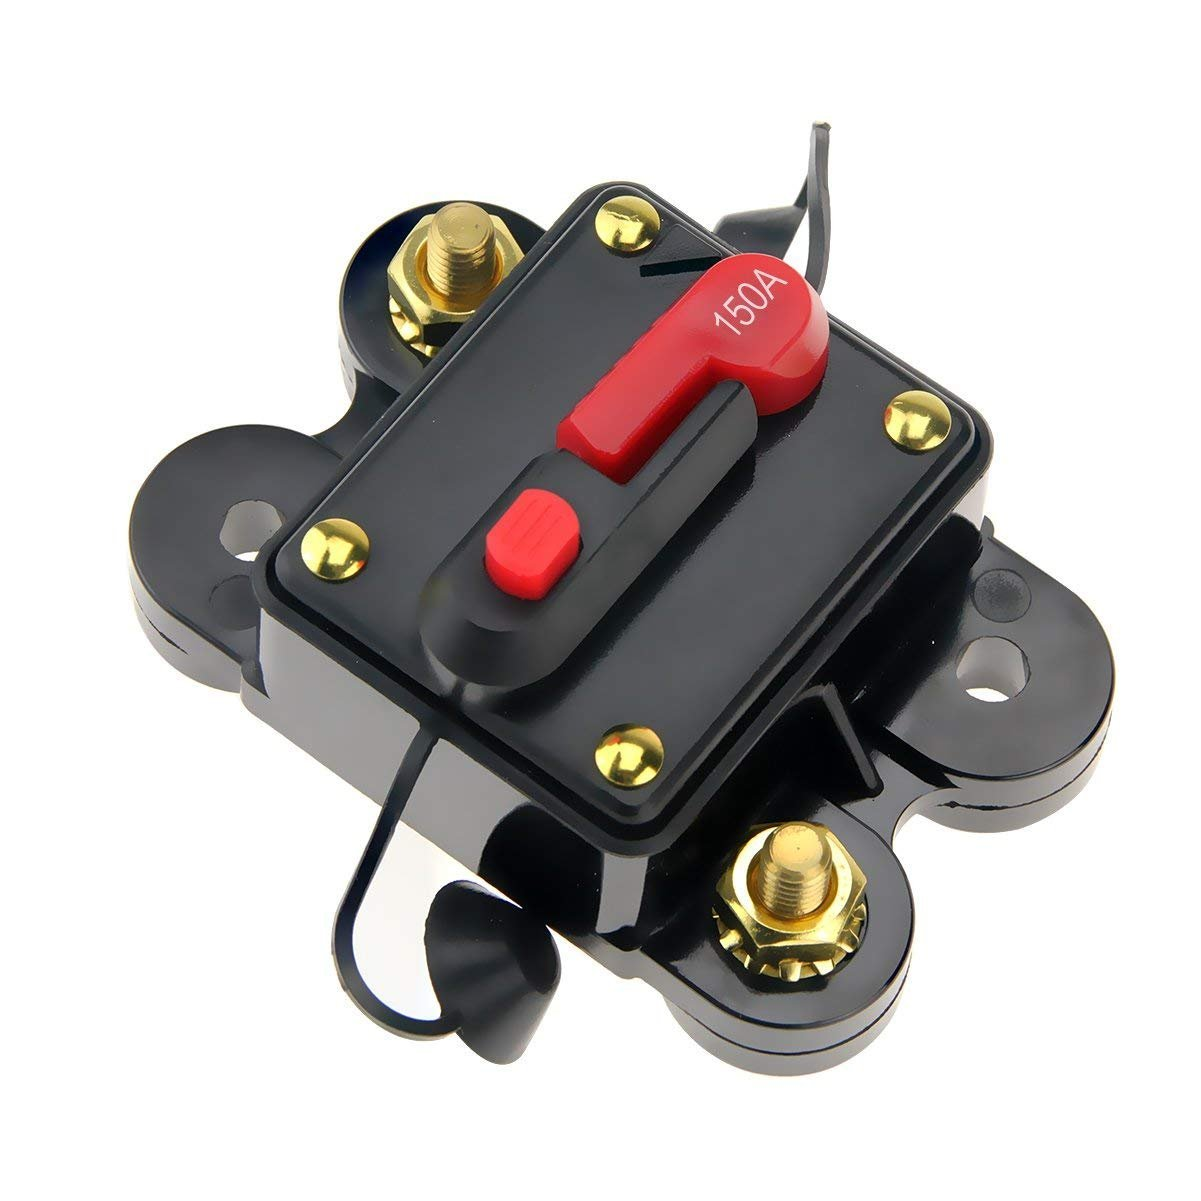 ANJOSHI 100amp Circuit Breaker 50A-300A Manual Reset Home Solar System Fuse Holder Car Audio Amps Protection 12V-24V DC Reset Fuse Inverter Replace Fuses